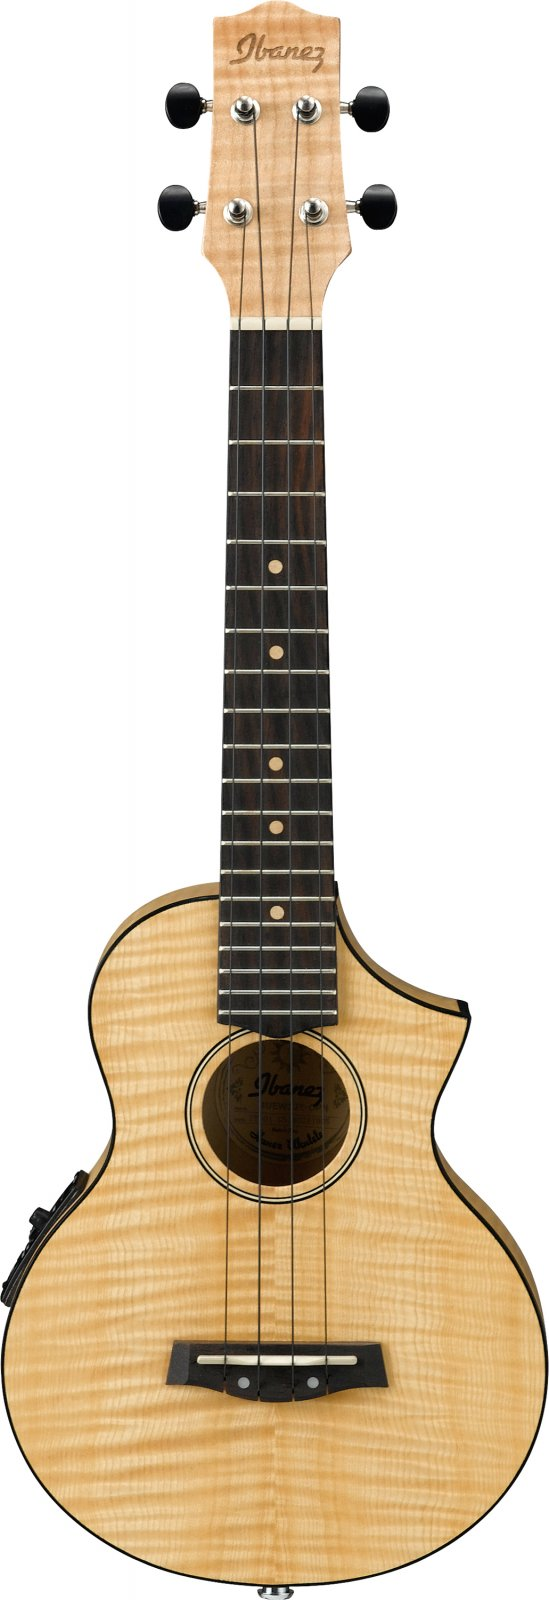 Ibanez UEW12E Acoustic/Electric Flamed Maple Concert Ukulele with Cutaway